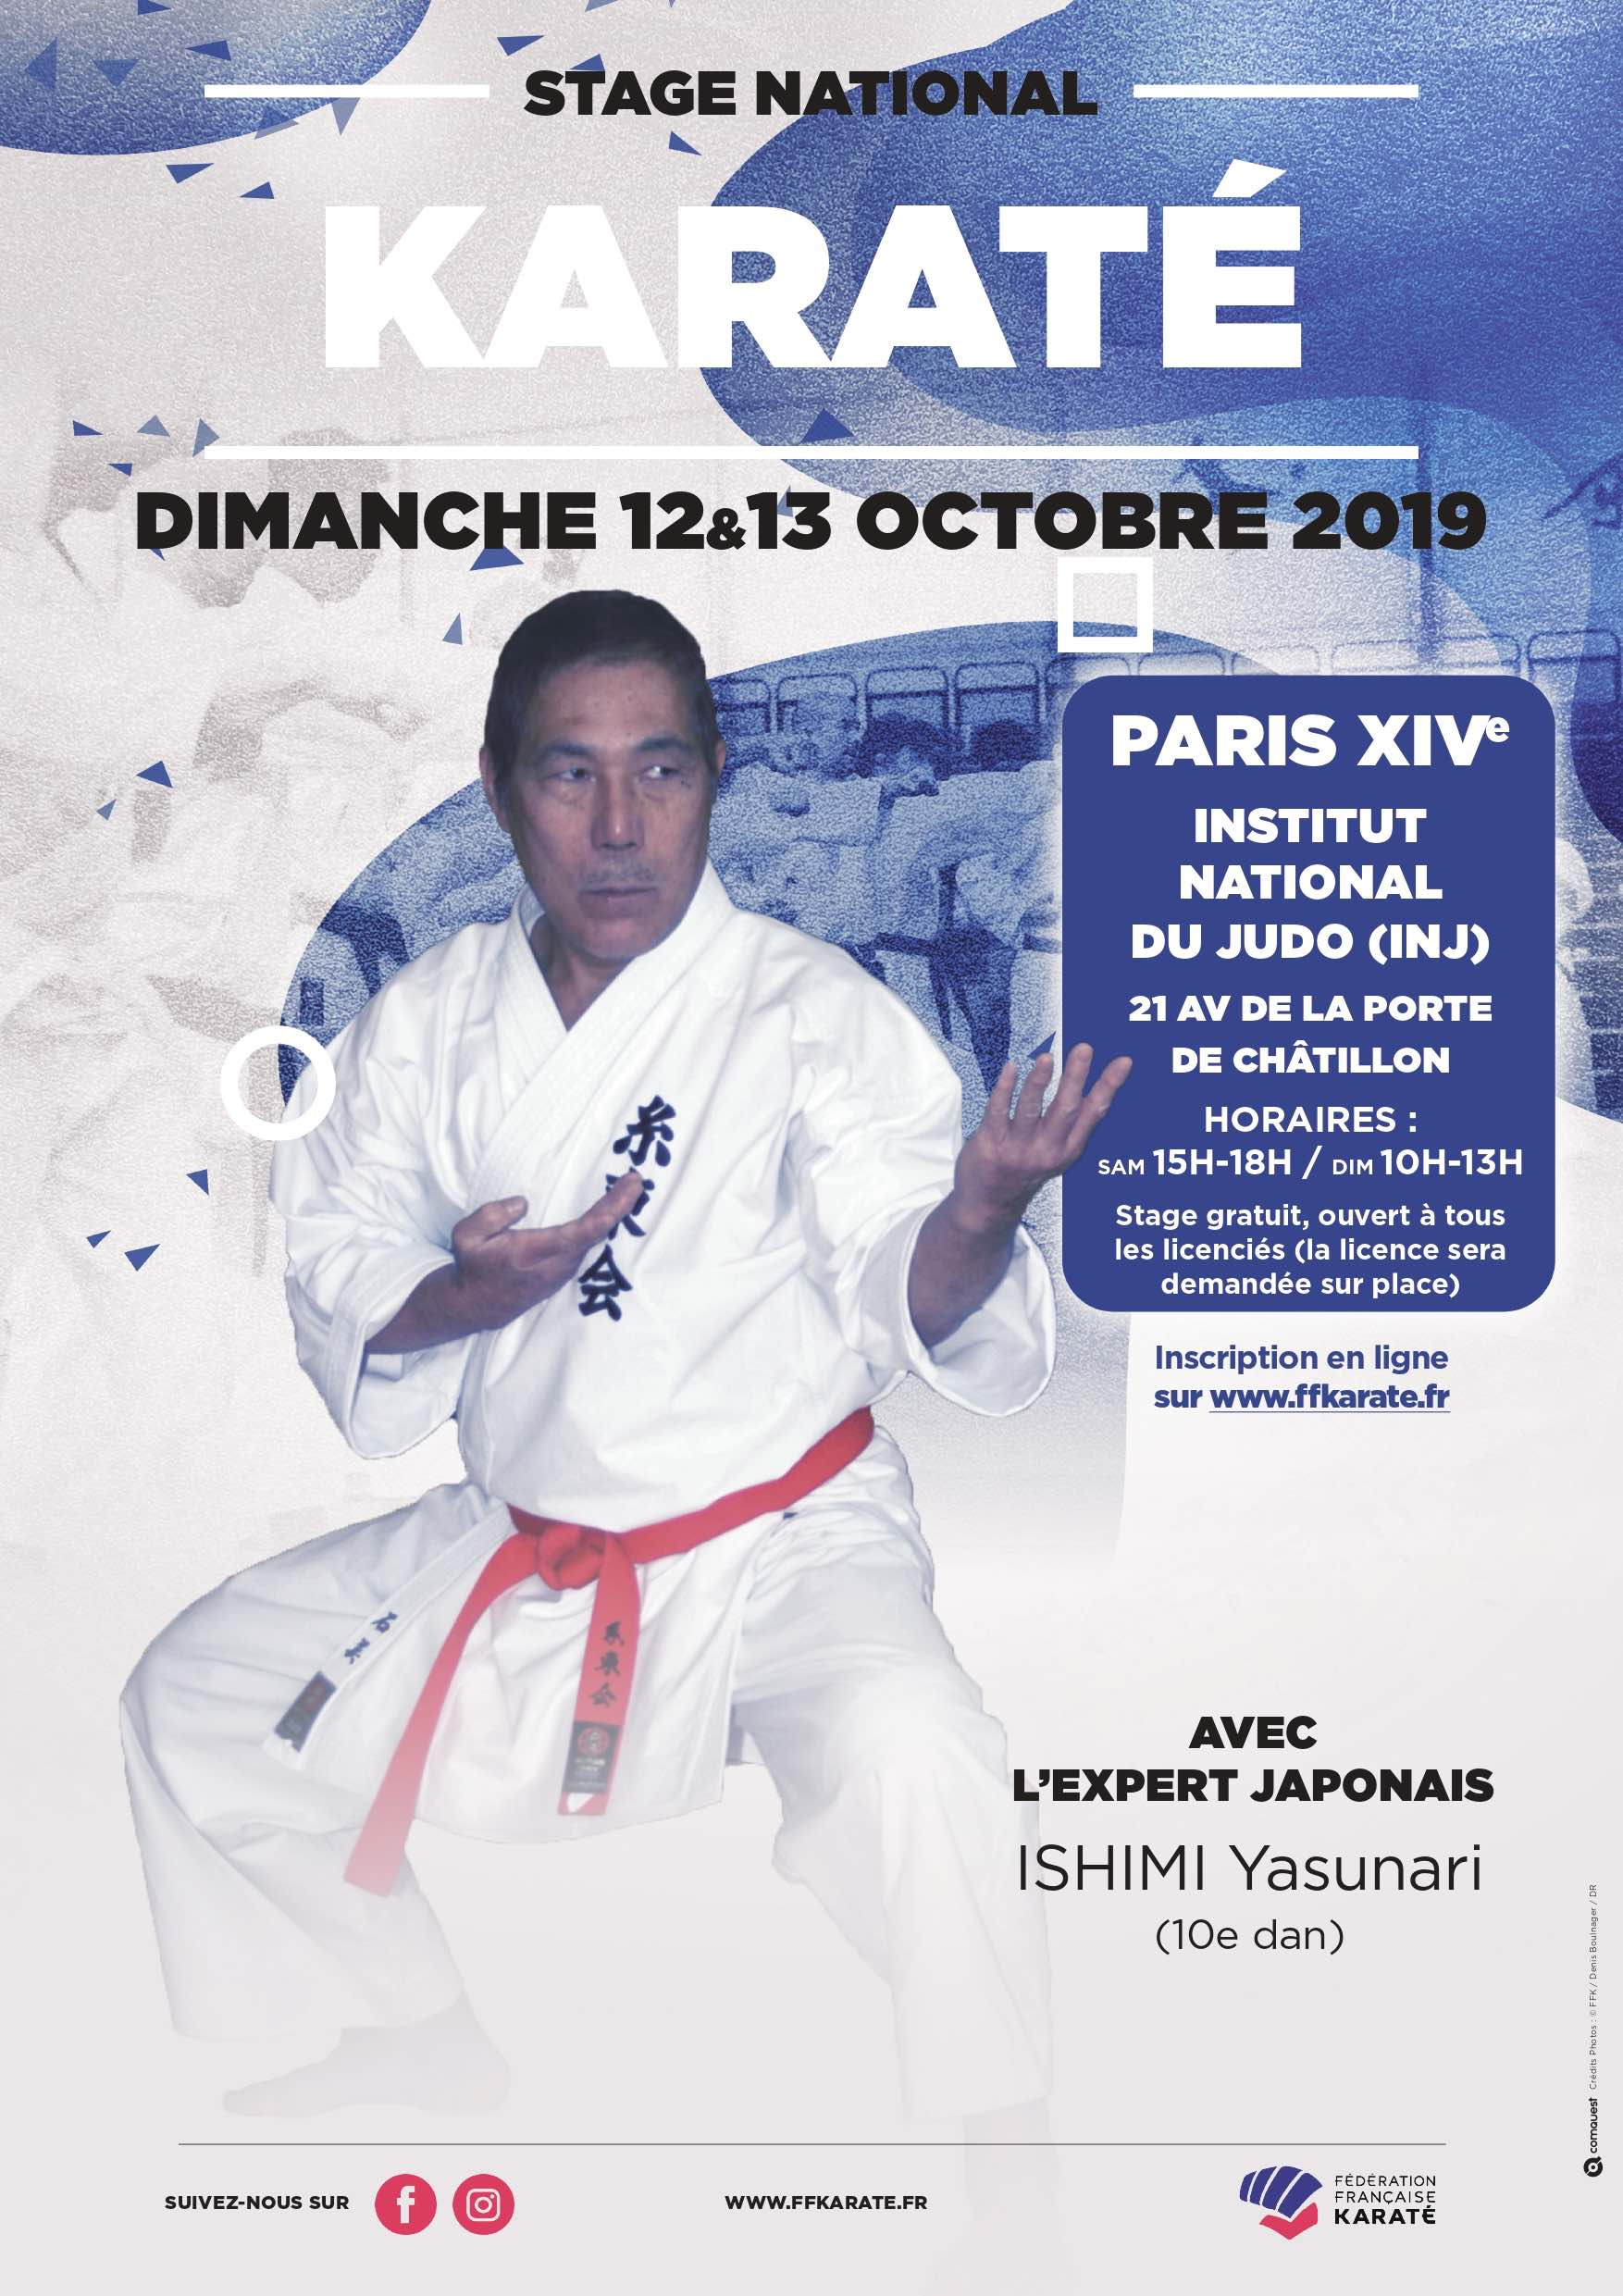 FFKARATE_A3_2019_KARATE_Stage-national-expert-Ishimi_02_page-0001